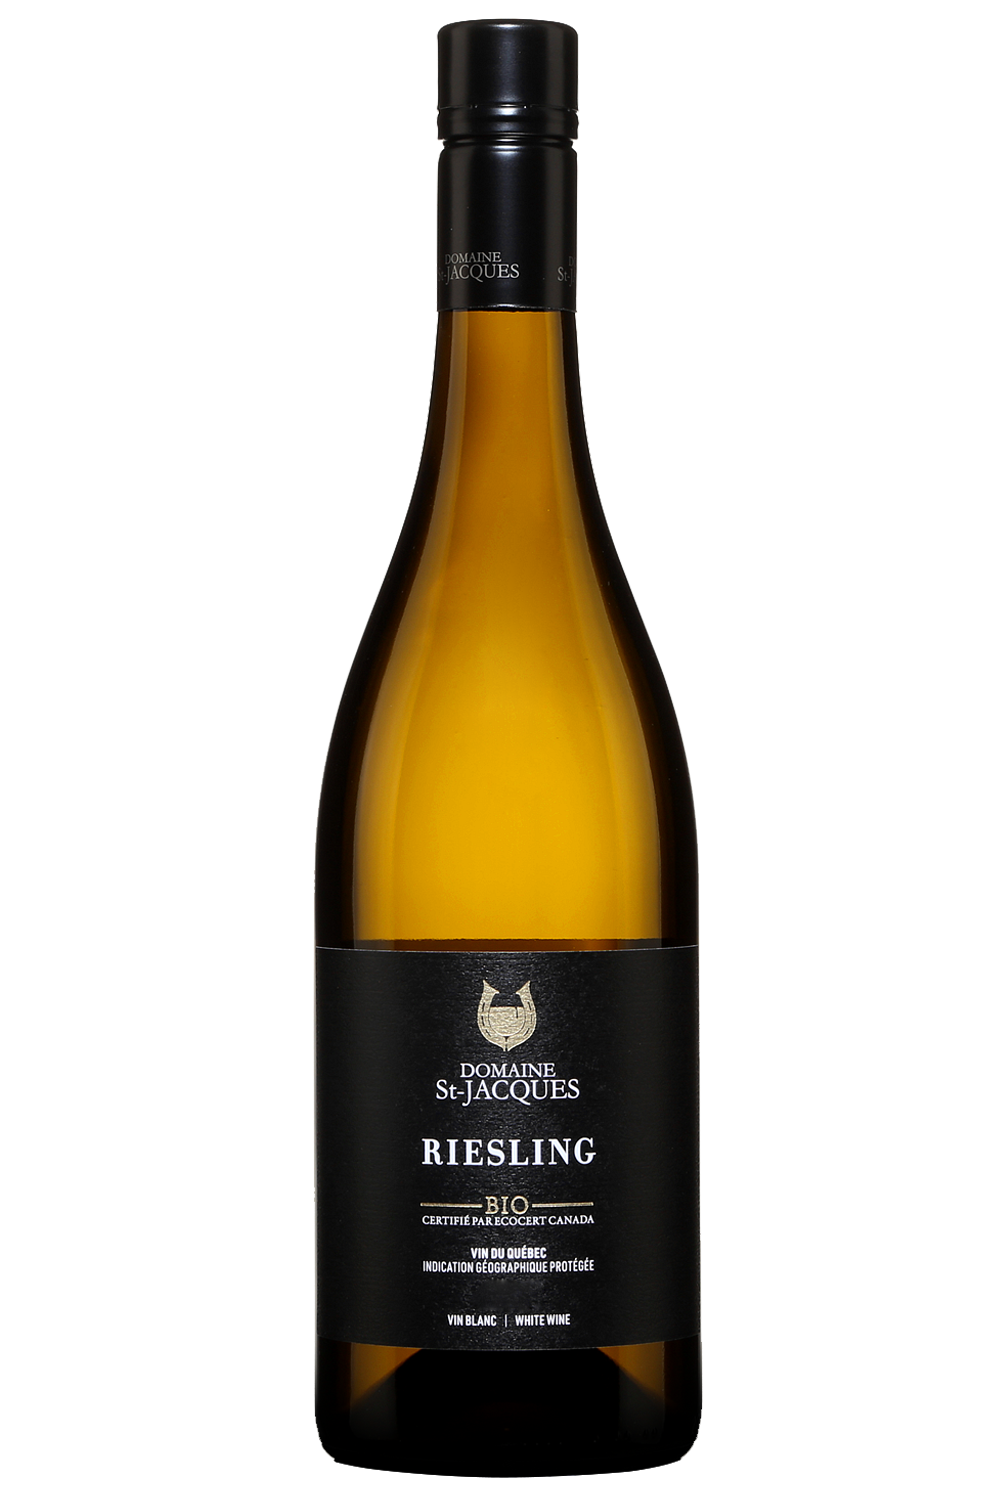 Domaine St-Jacques Riesling 2018